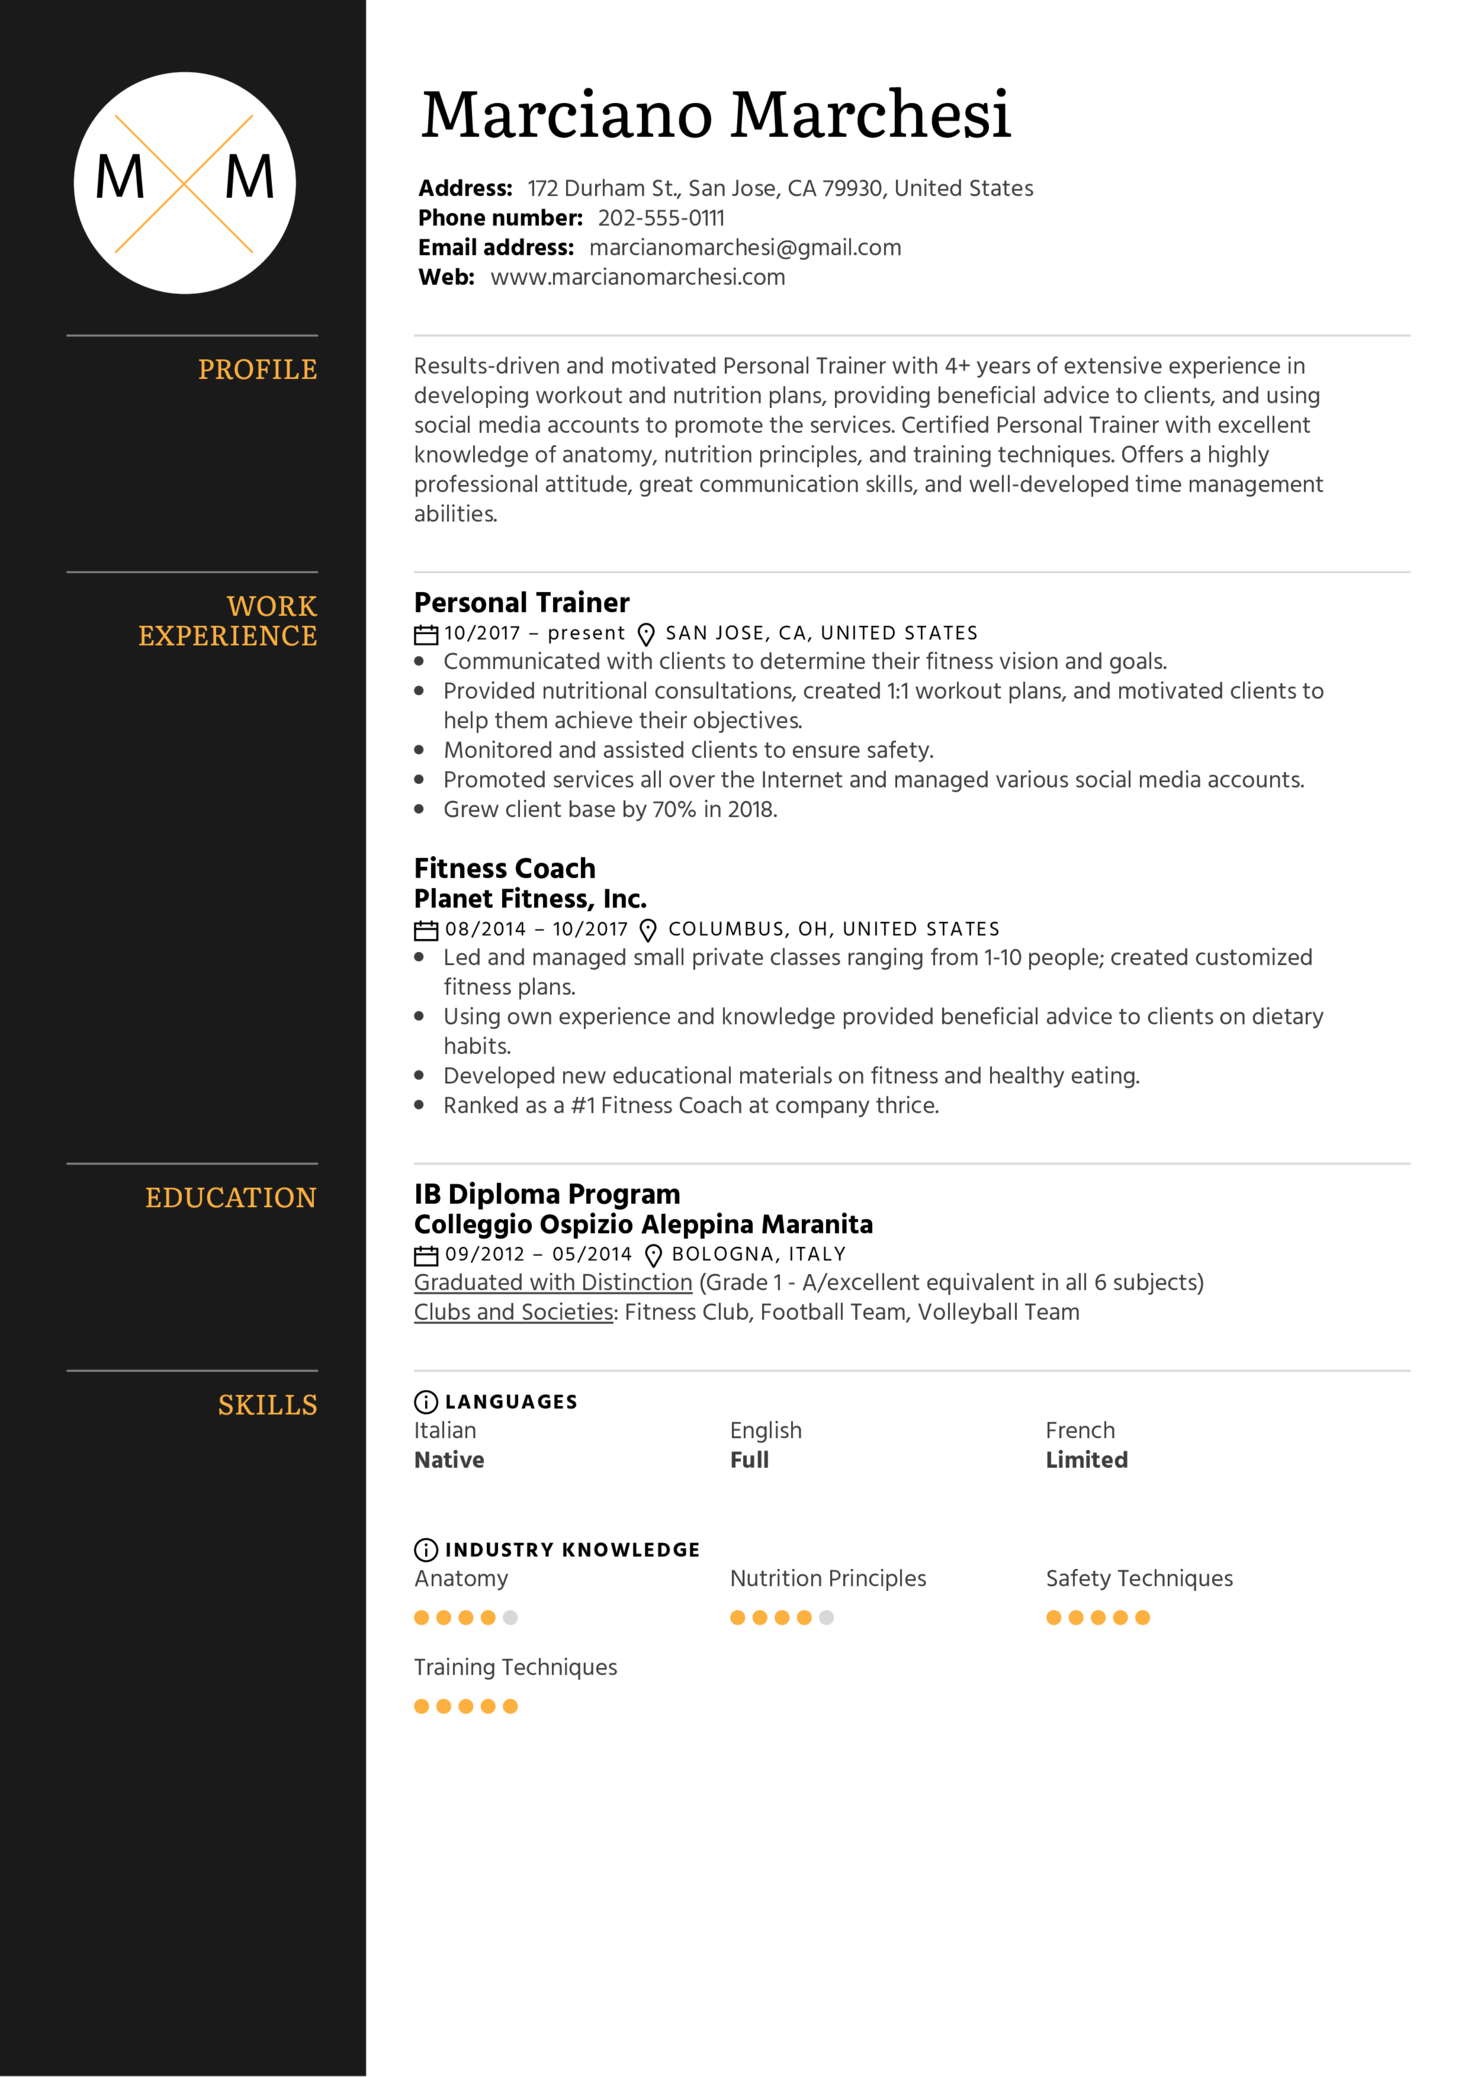 Personal Trainer Resume Sample (Part 1)